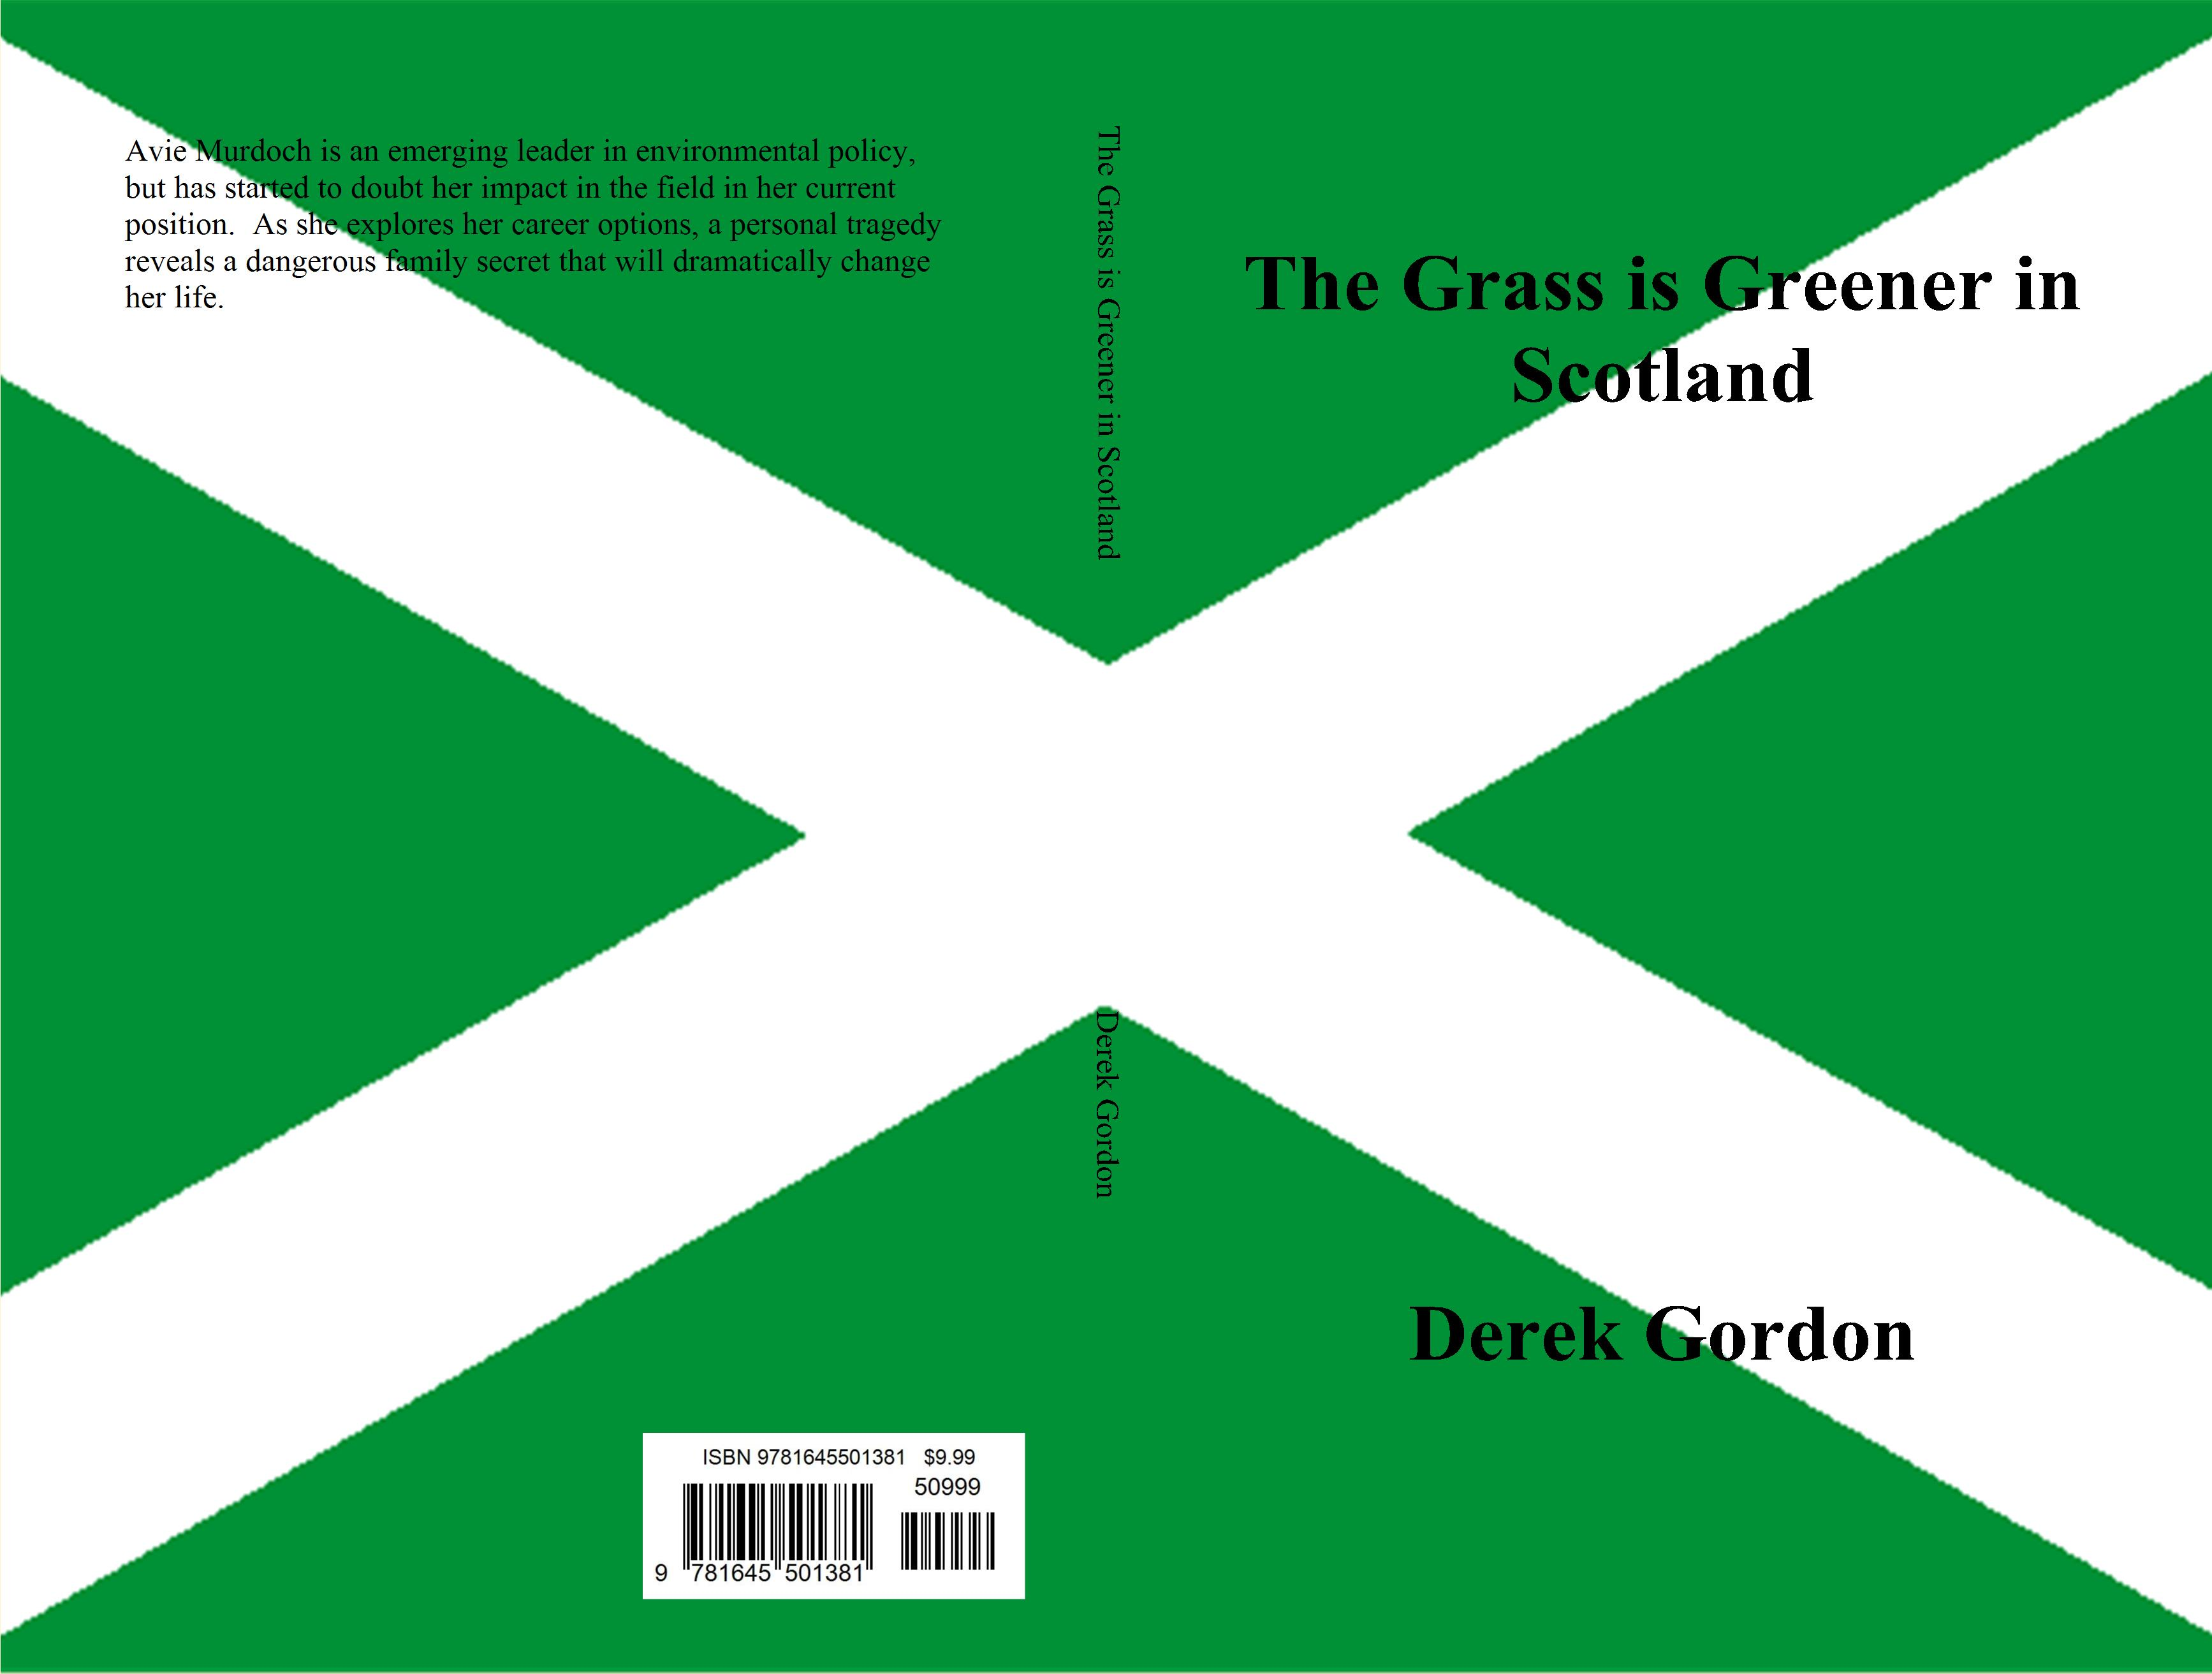 The Grass is Greener in Scotland cover image